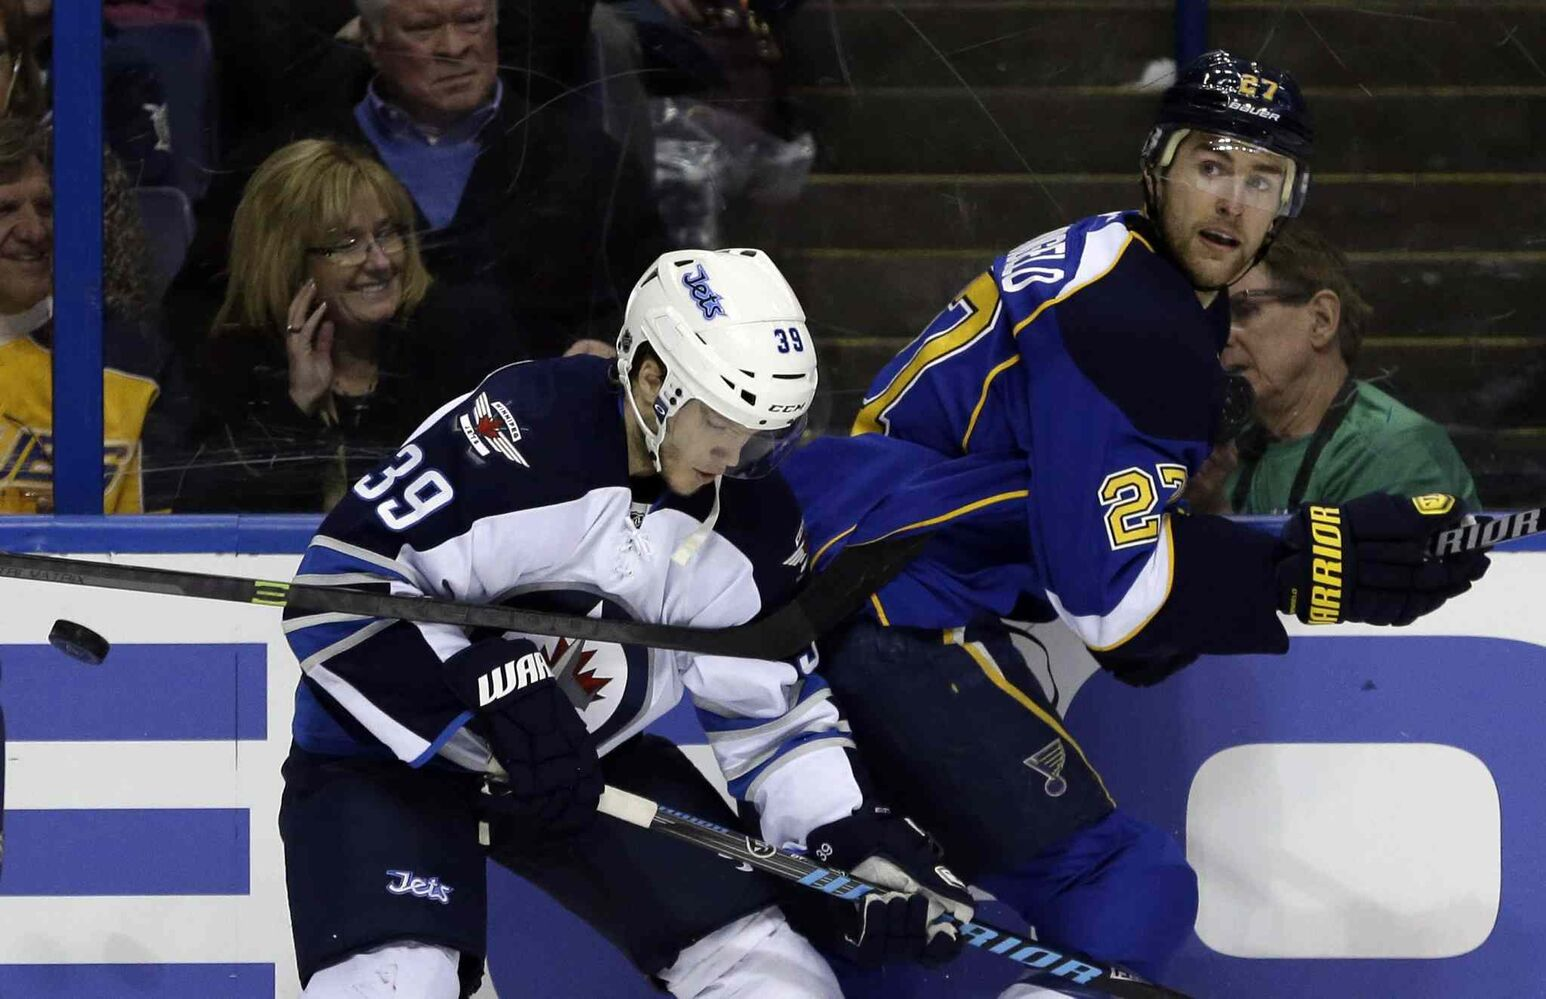 Jets defenceman Tobias Enstrom and Blues defenceman Alex Pietrangelo chase after a loose puck in the second period. (JEFF ROBERSON / THE ASSOCIATED PRESS)